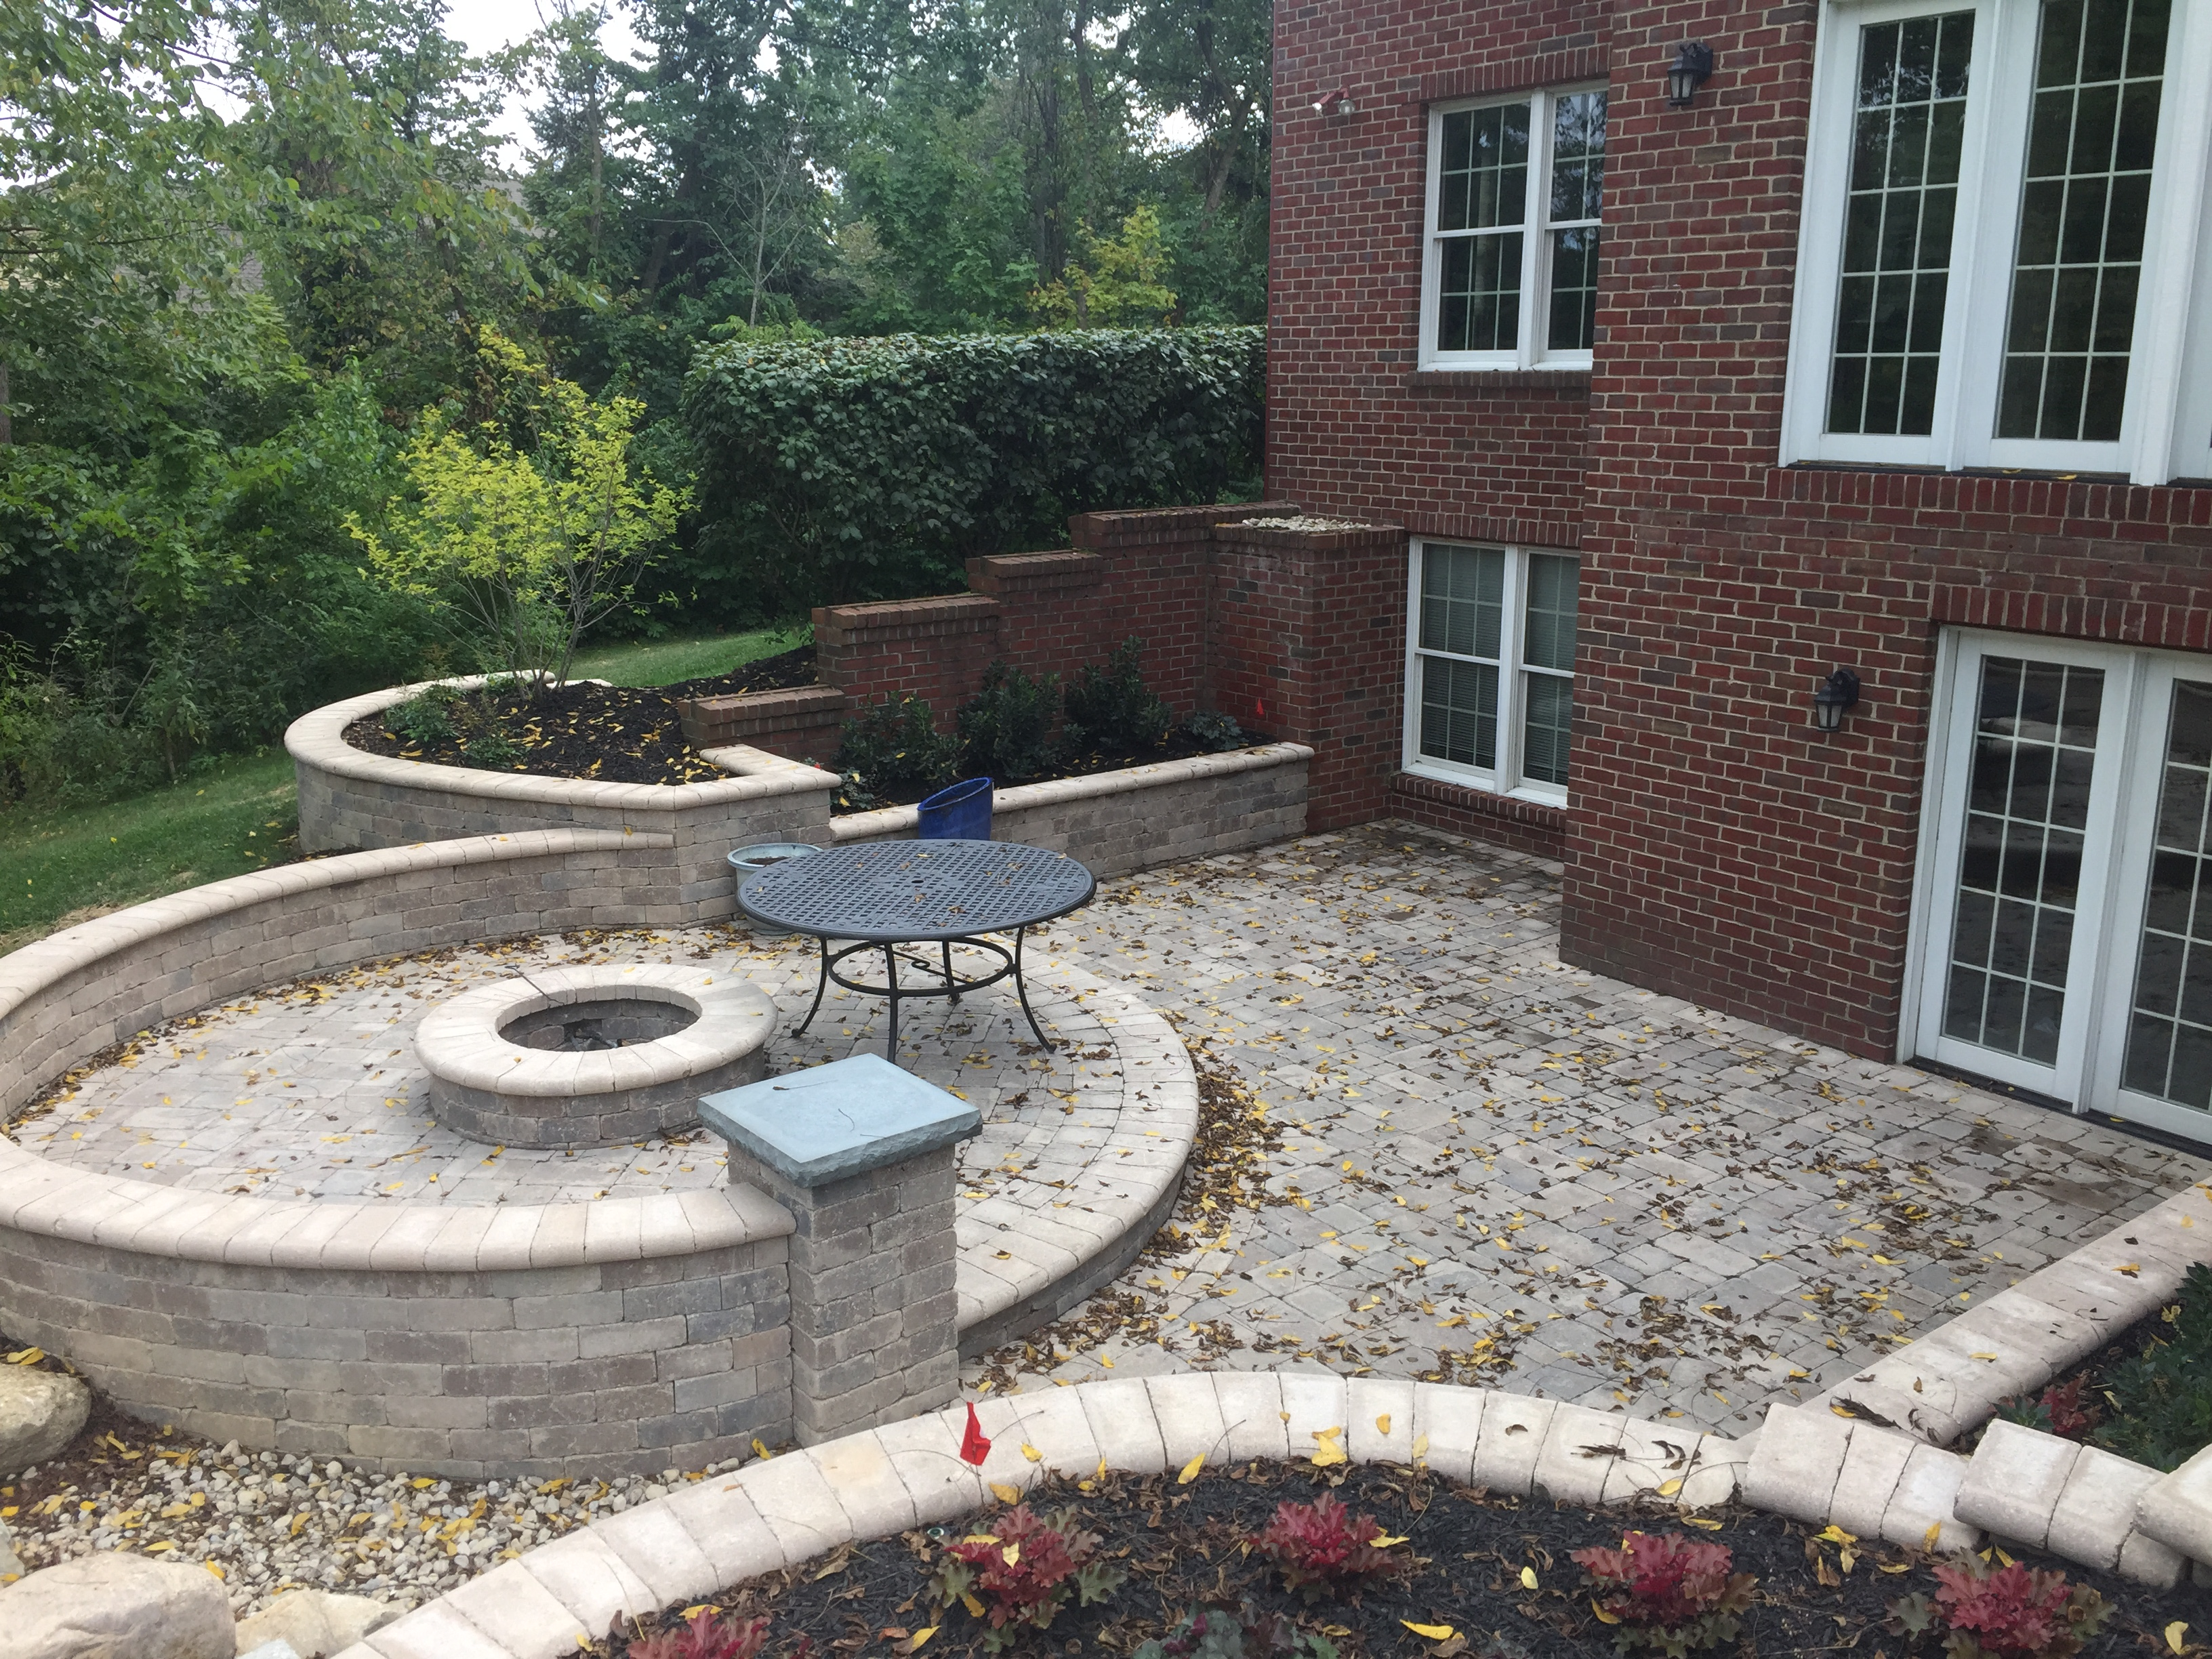 The Fire Pit Has A Gas Starter And Can Burn Either Gas Or Wood. The  Built In Grill Is Right Outside The Kitchen Door And Is Convenient To  Inside Or Out ...